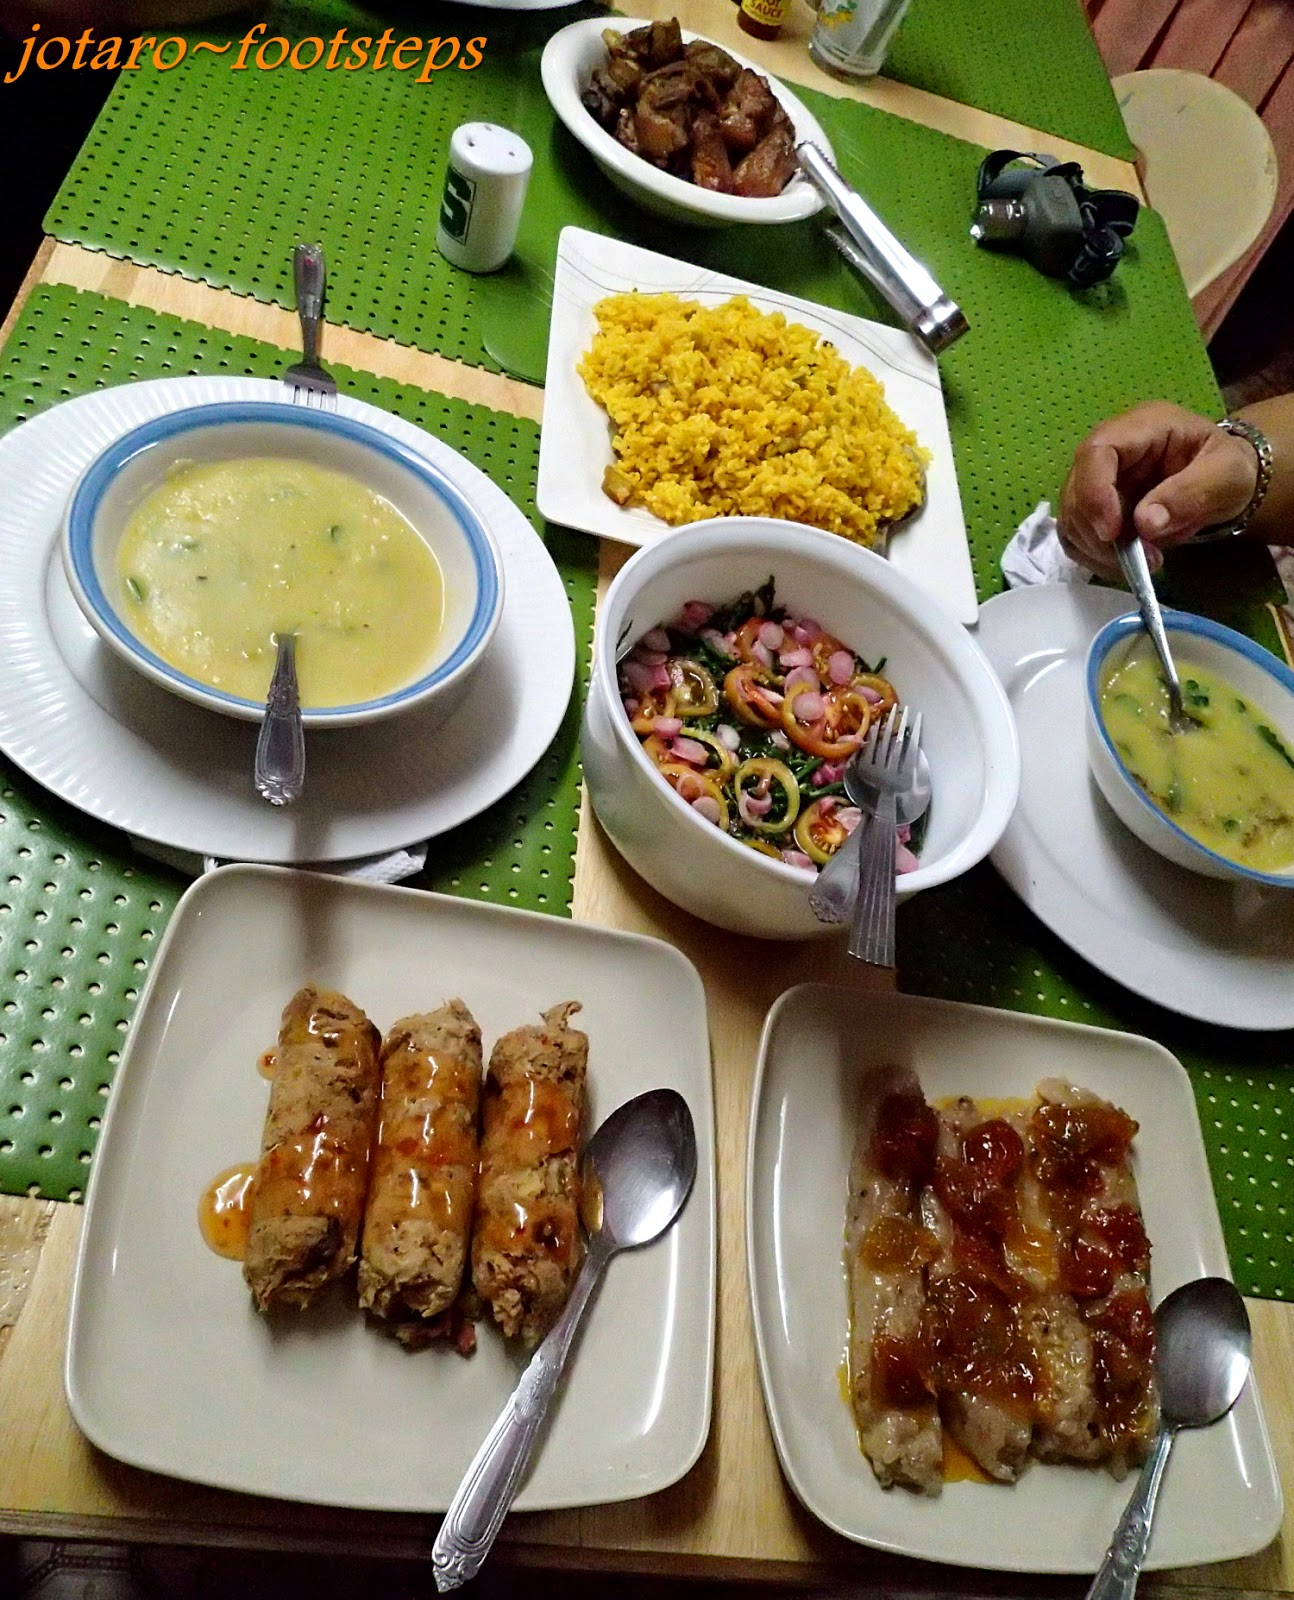 14 Philippines Ivatan Food Dinner Spread Coconut Crab Hiro Ivatan Food Batanes Philippines-44.jpg